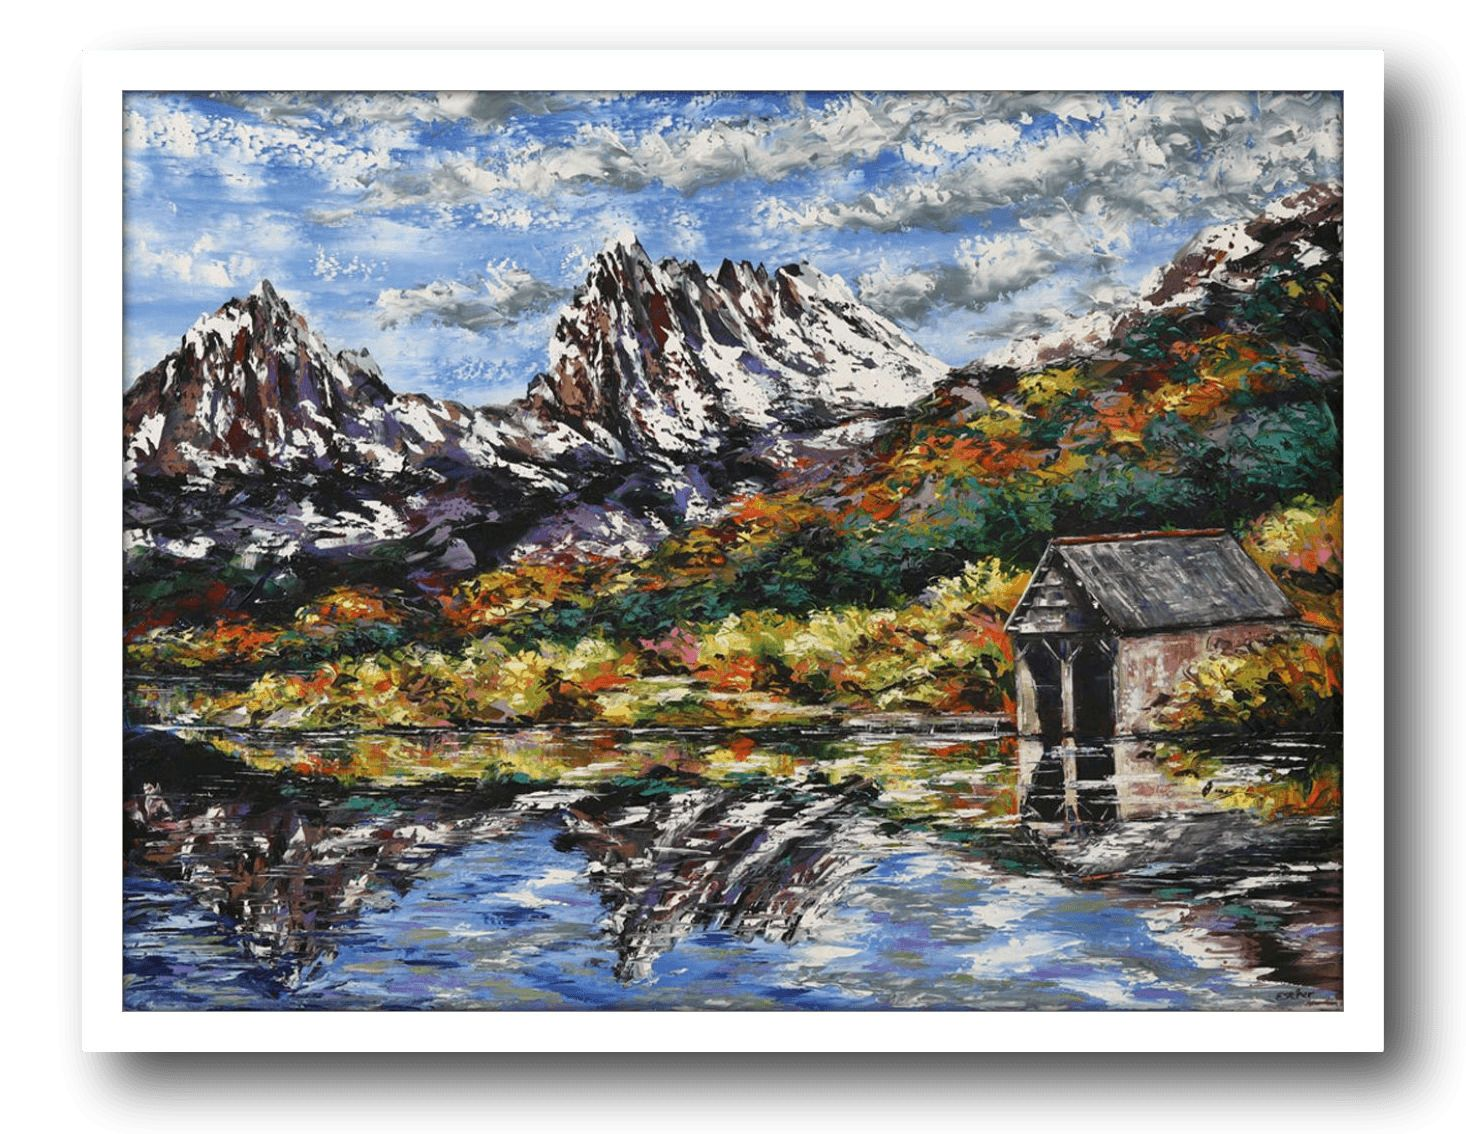 Esther Shohet Painting ~ 'Where the Air is Clean, Cradle Mountain' - Gallery Salamanca Hobart Tasmania